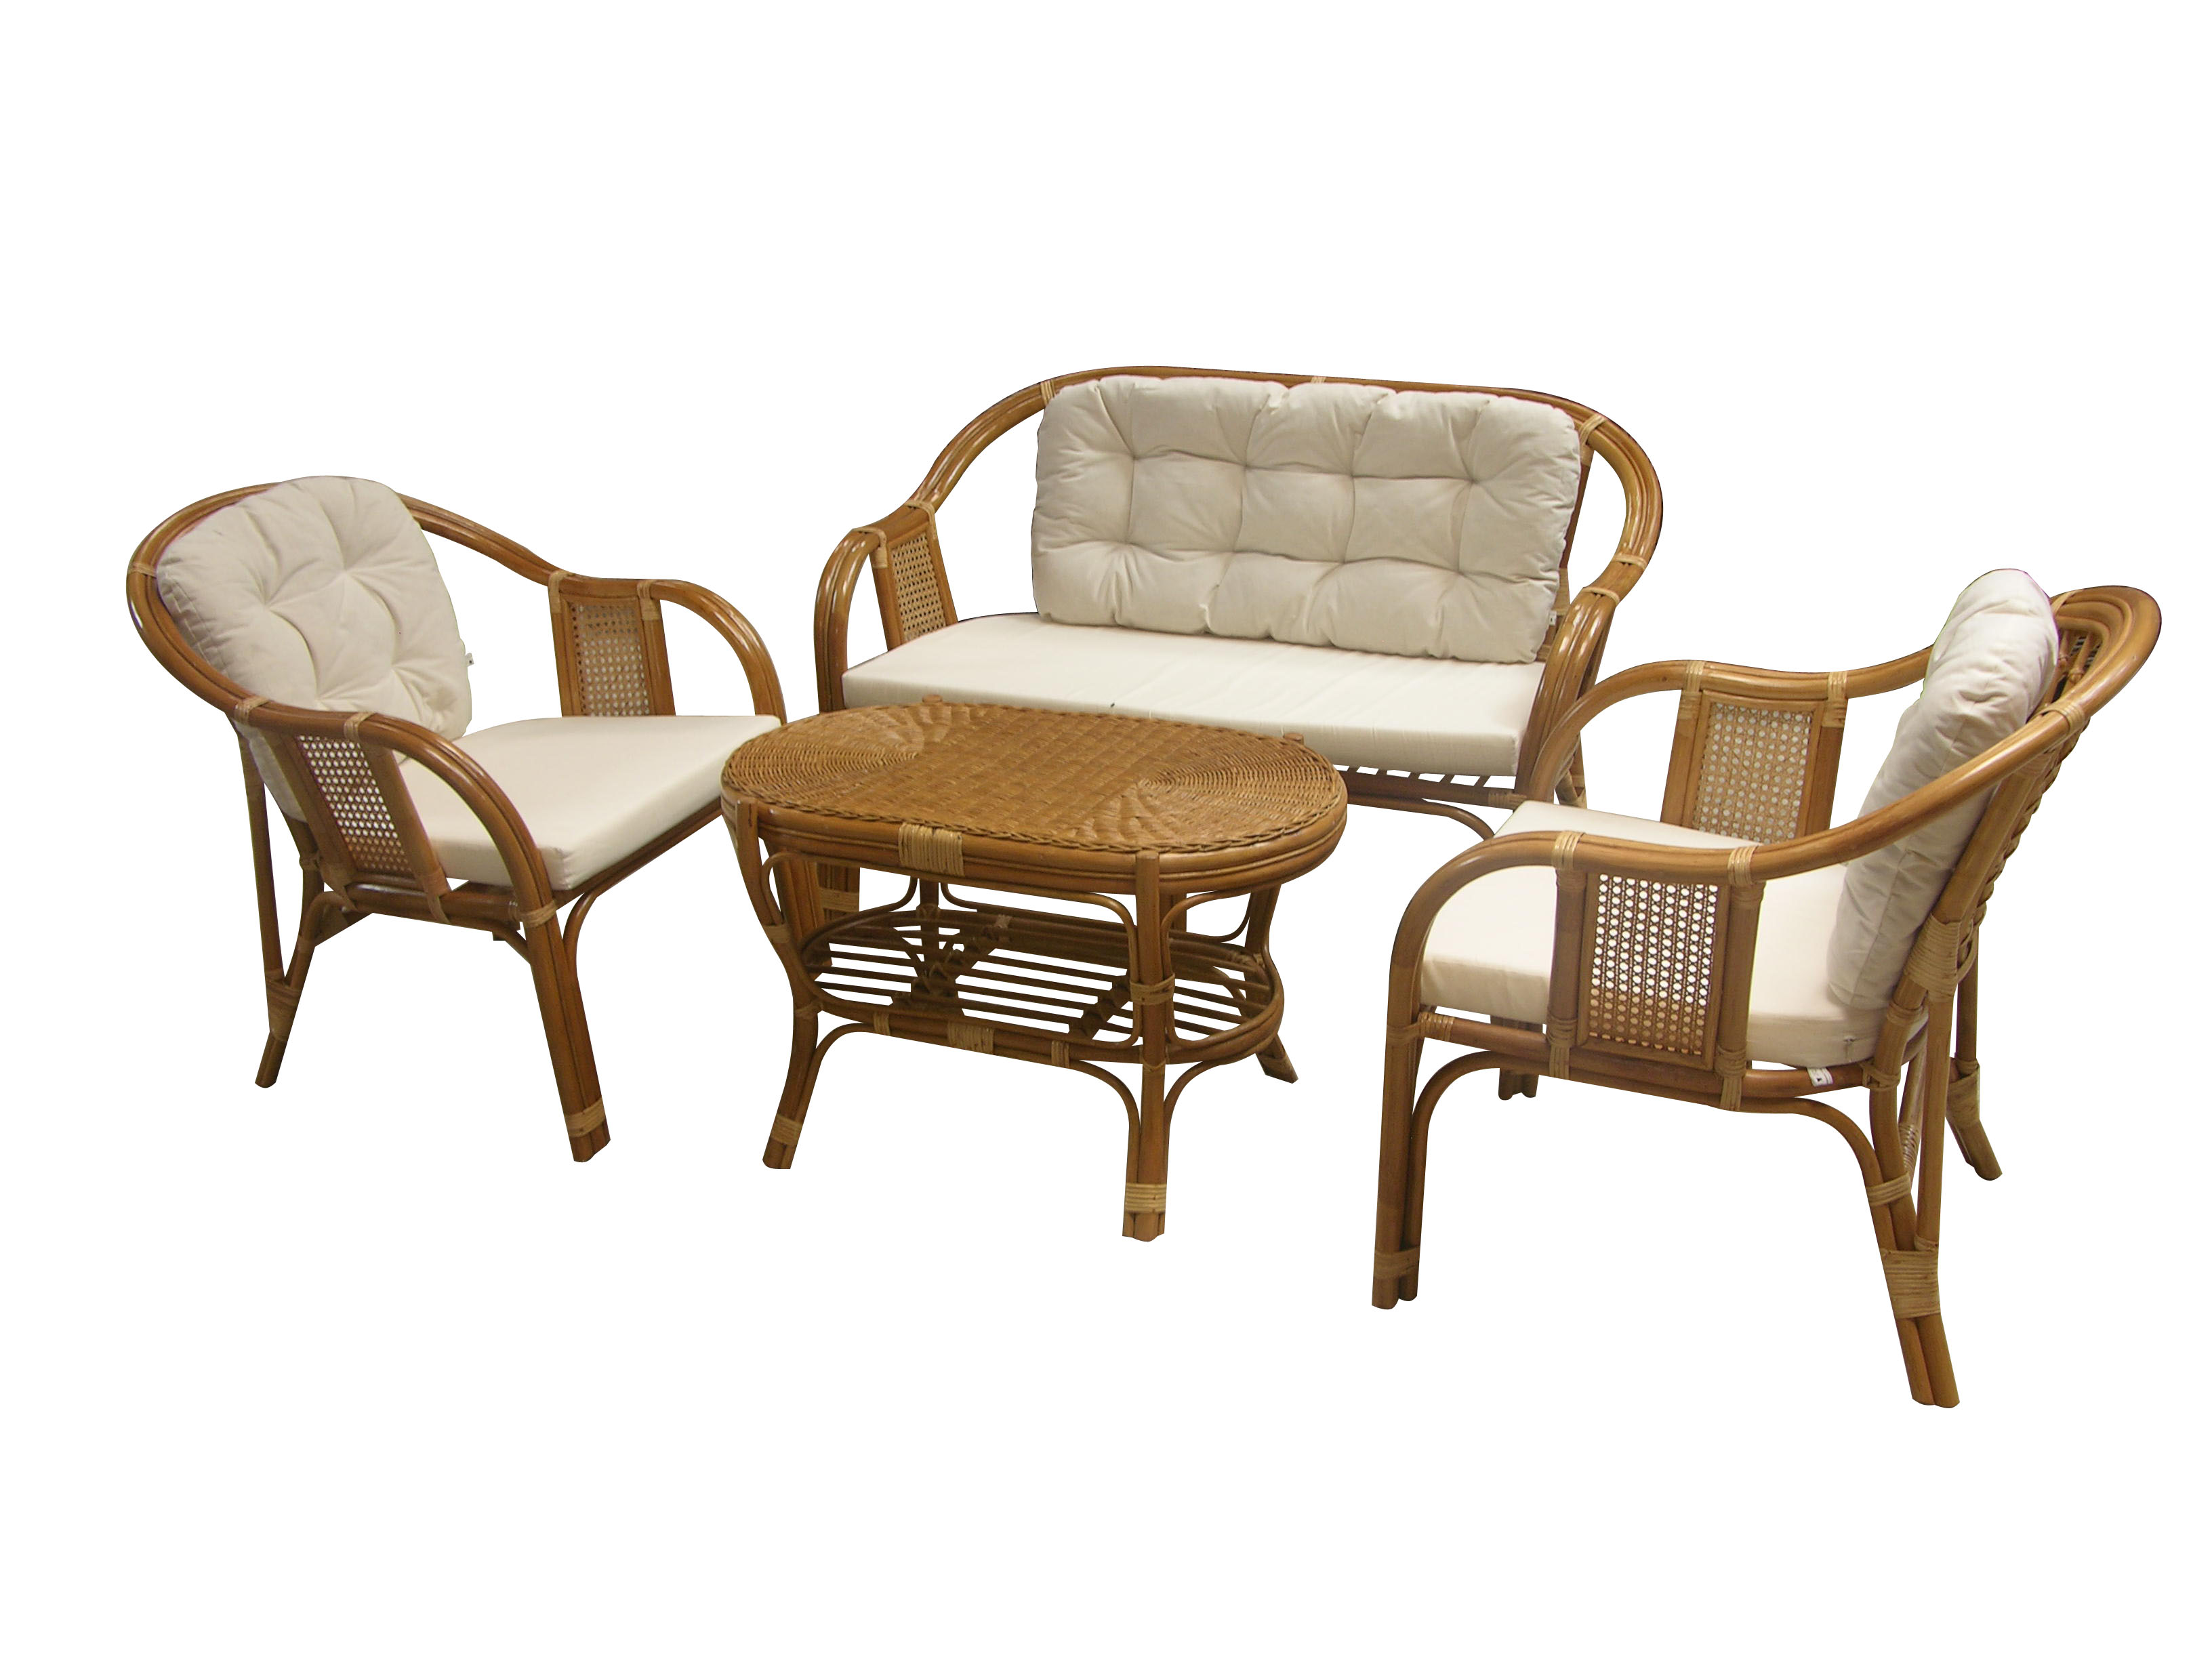 Prima Set on Water Hyacinth Chair